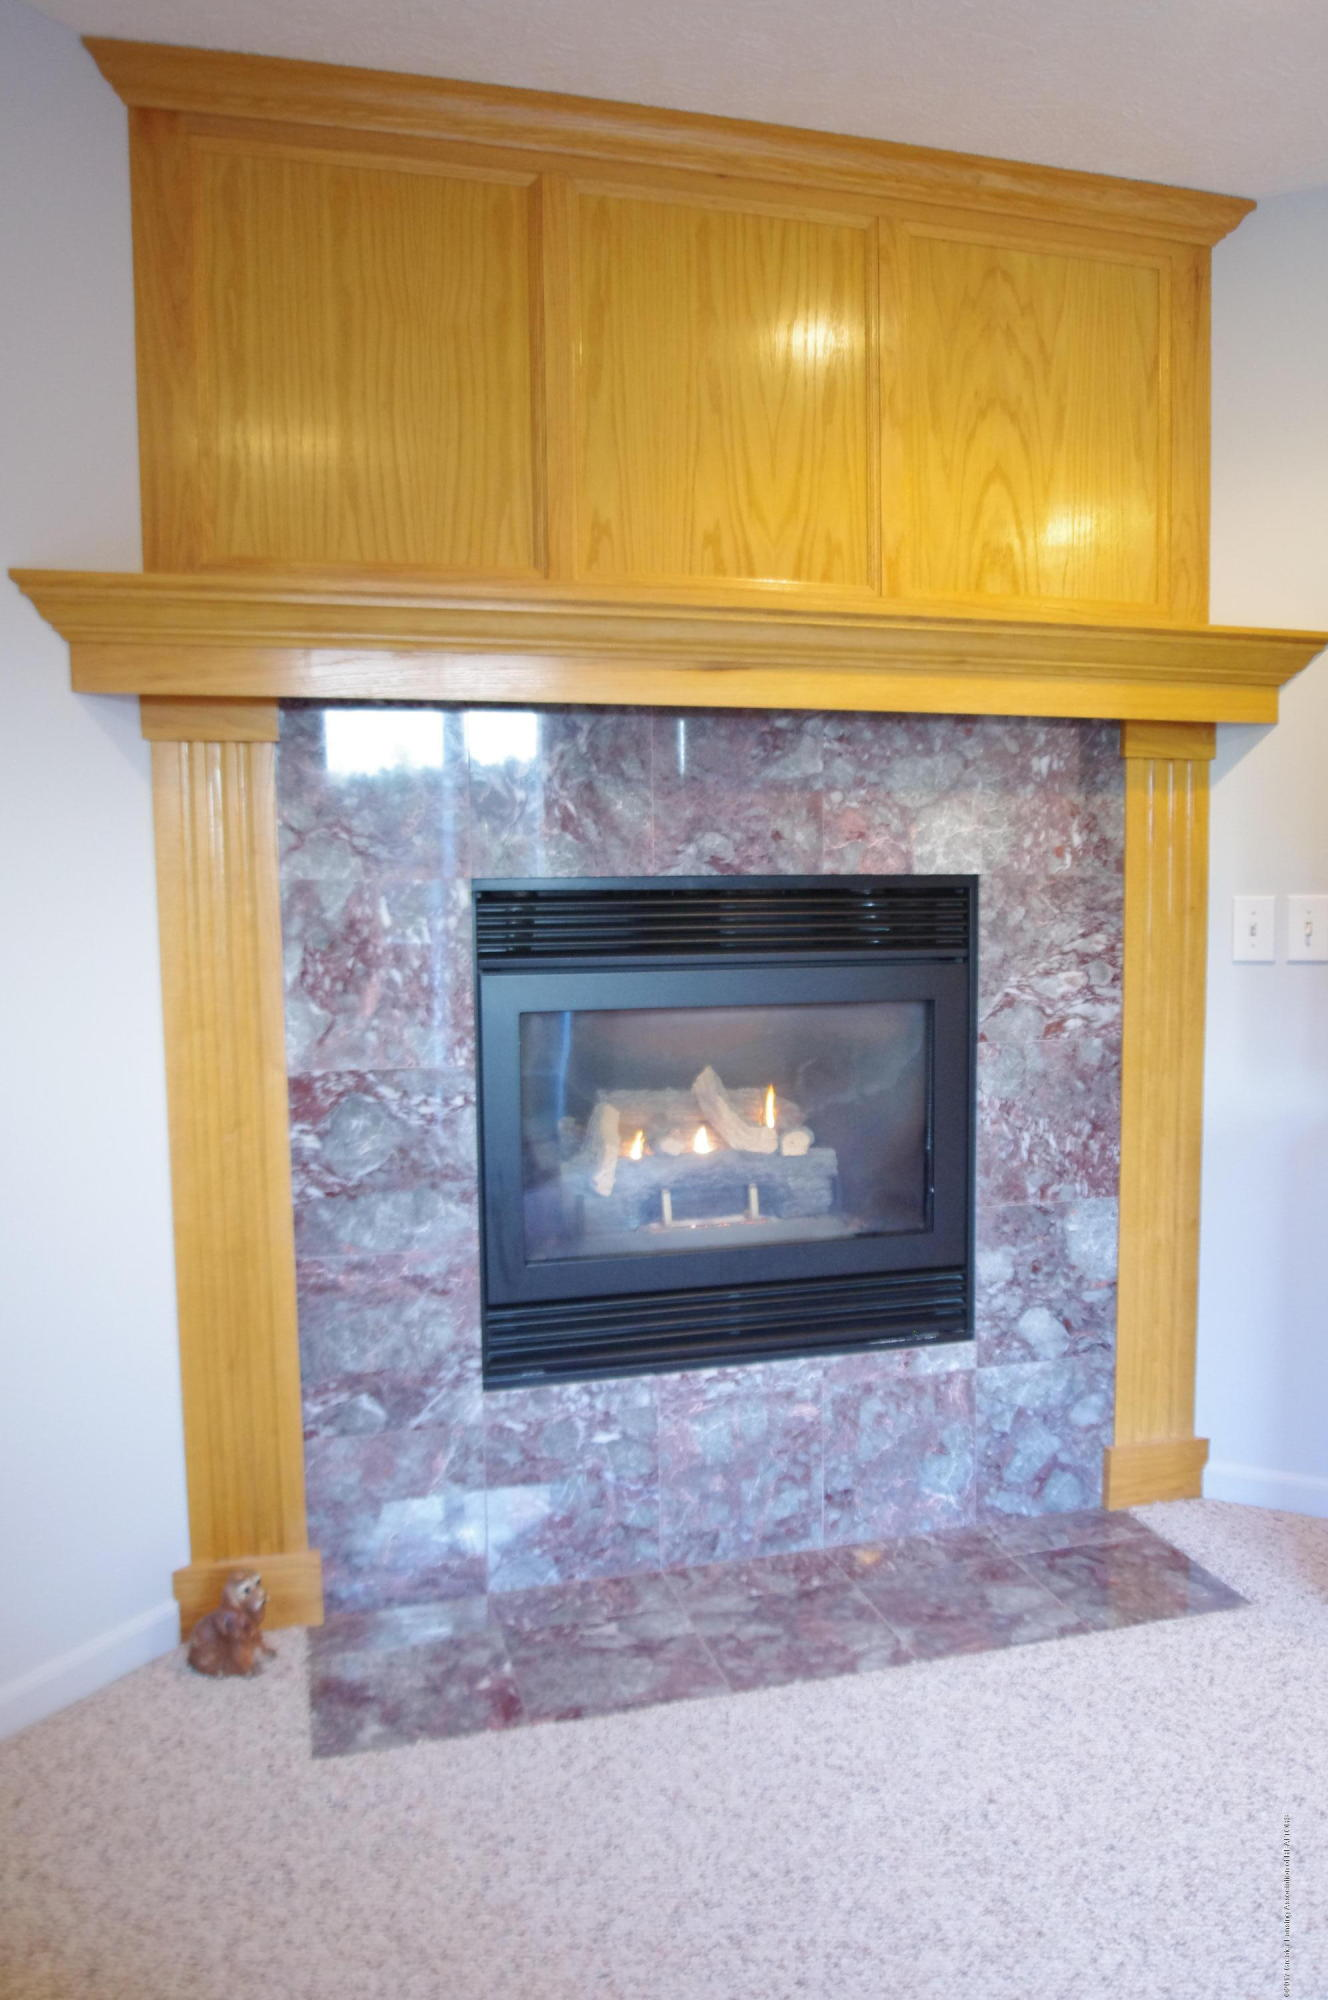 5545 S Krepps Rd - Lower Level Fireplace - 34